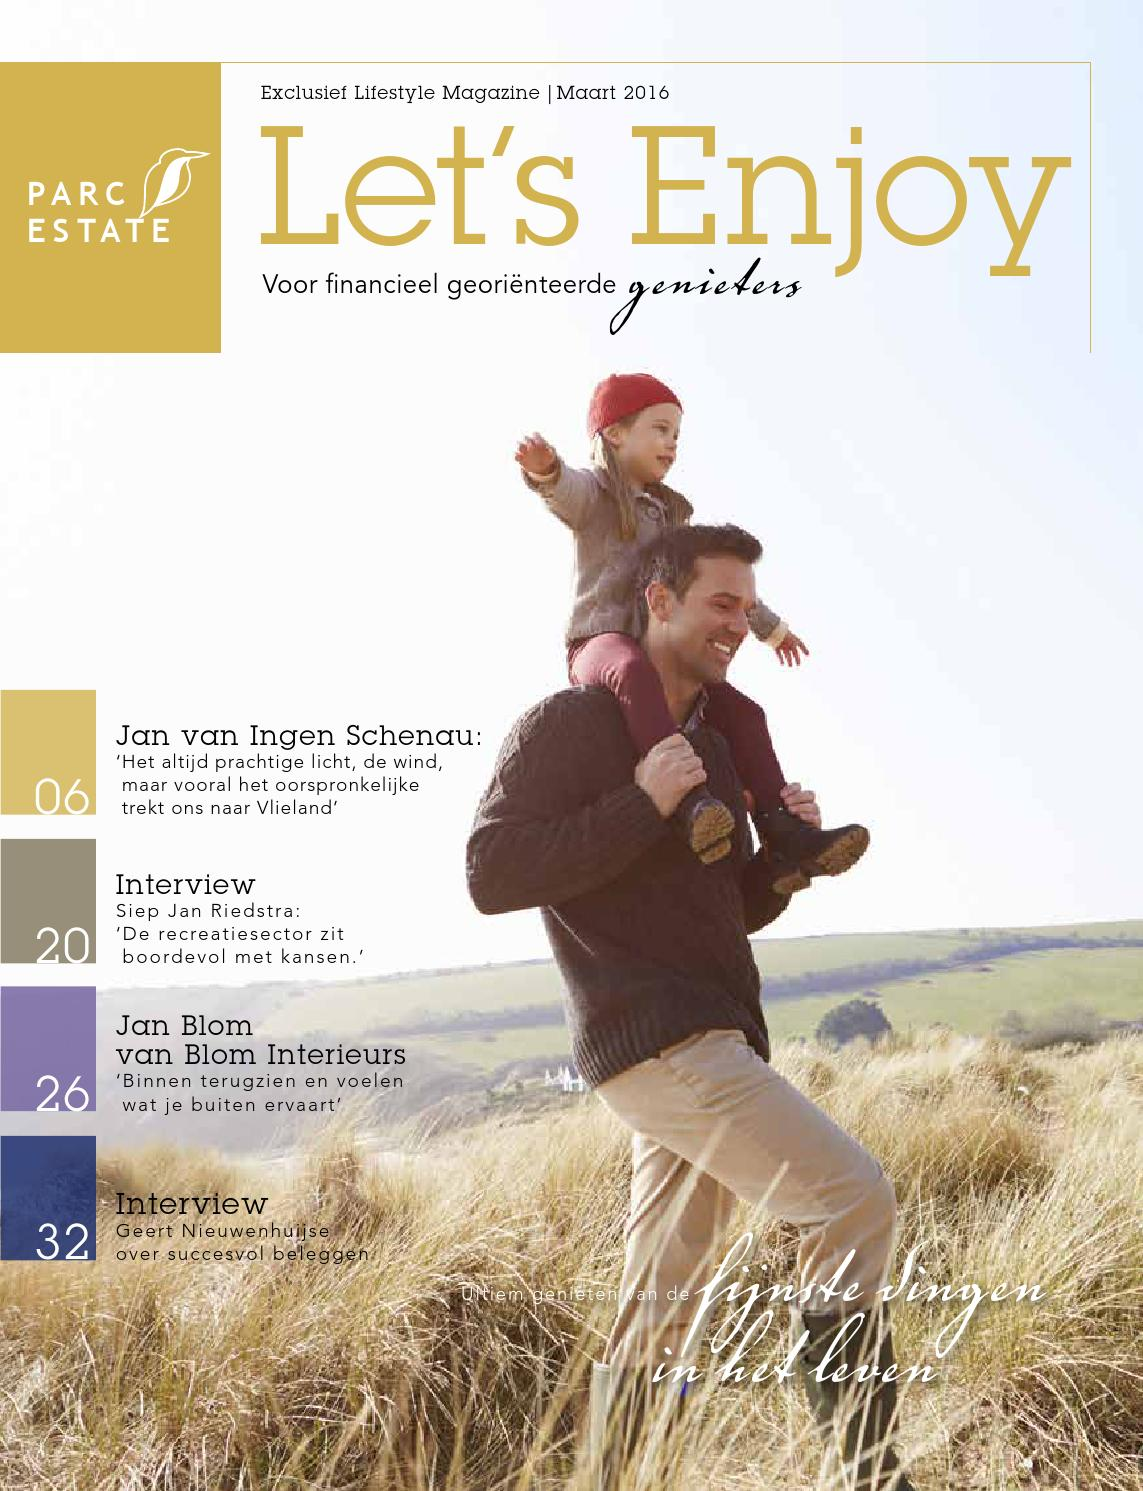 Parc estate magazine let´s enjoy 2016 by Parc Estate - issuu